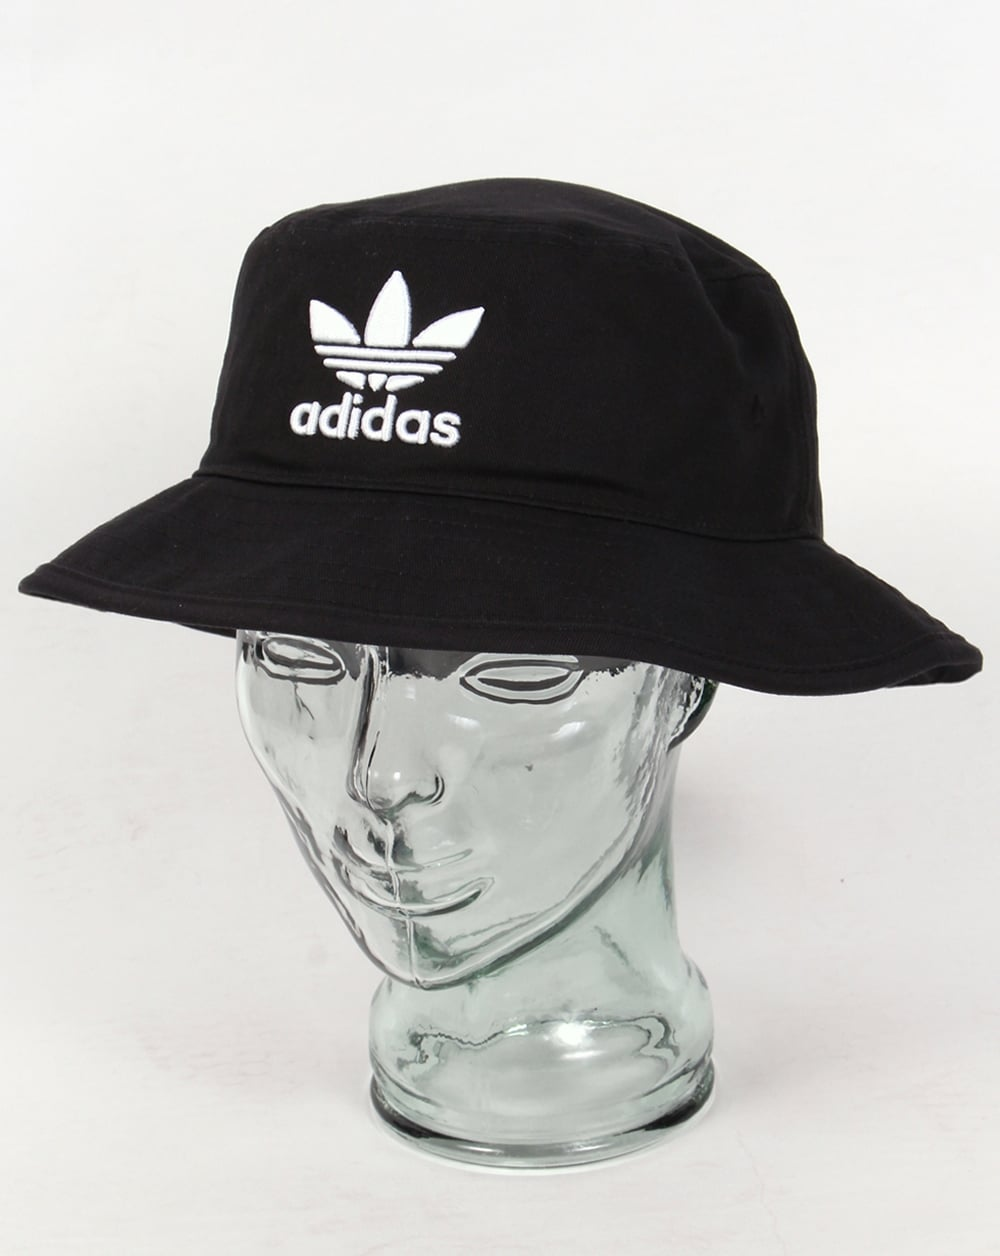 da0206989 Adidas Originals AC Bucket Hat Black